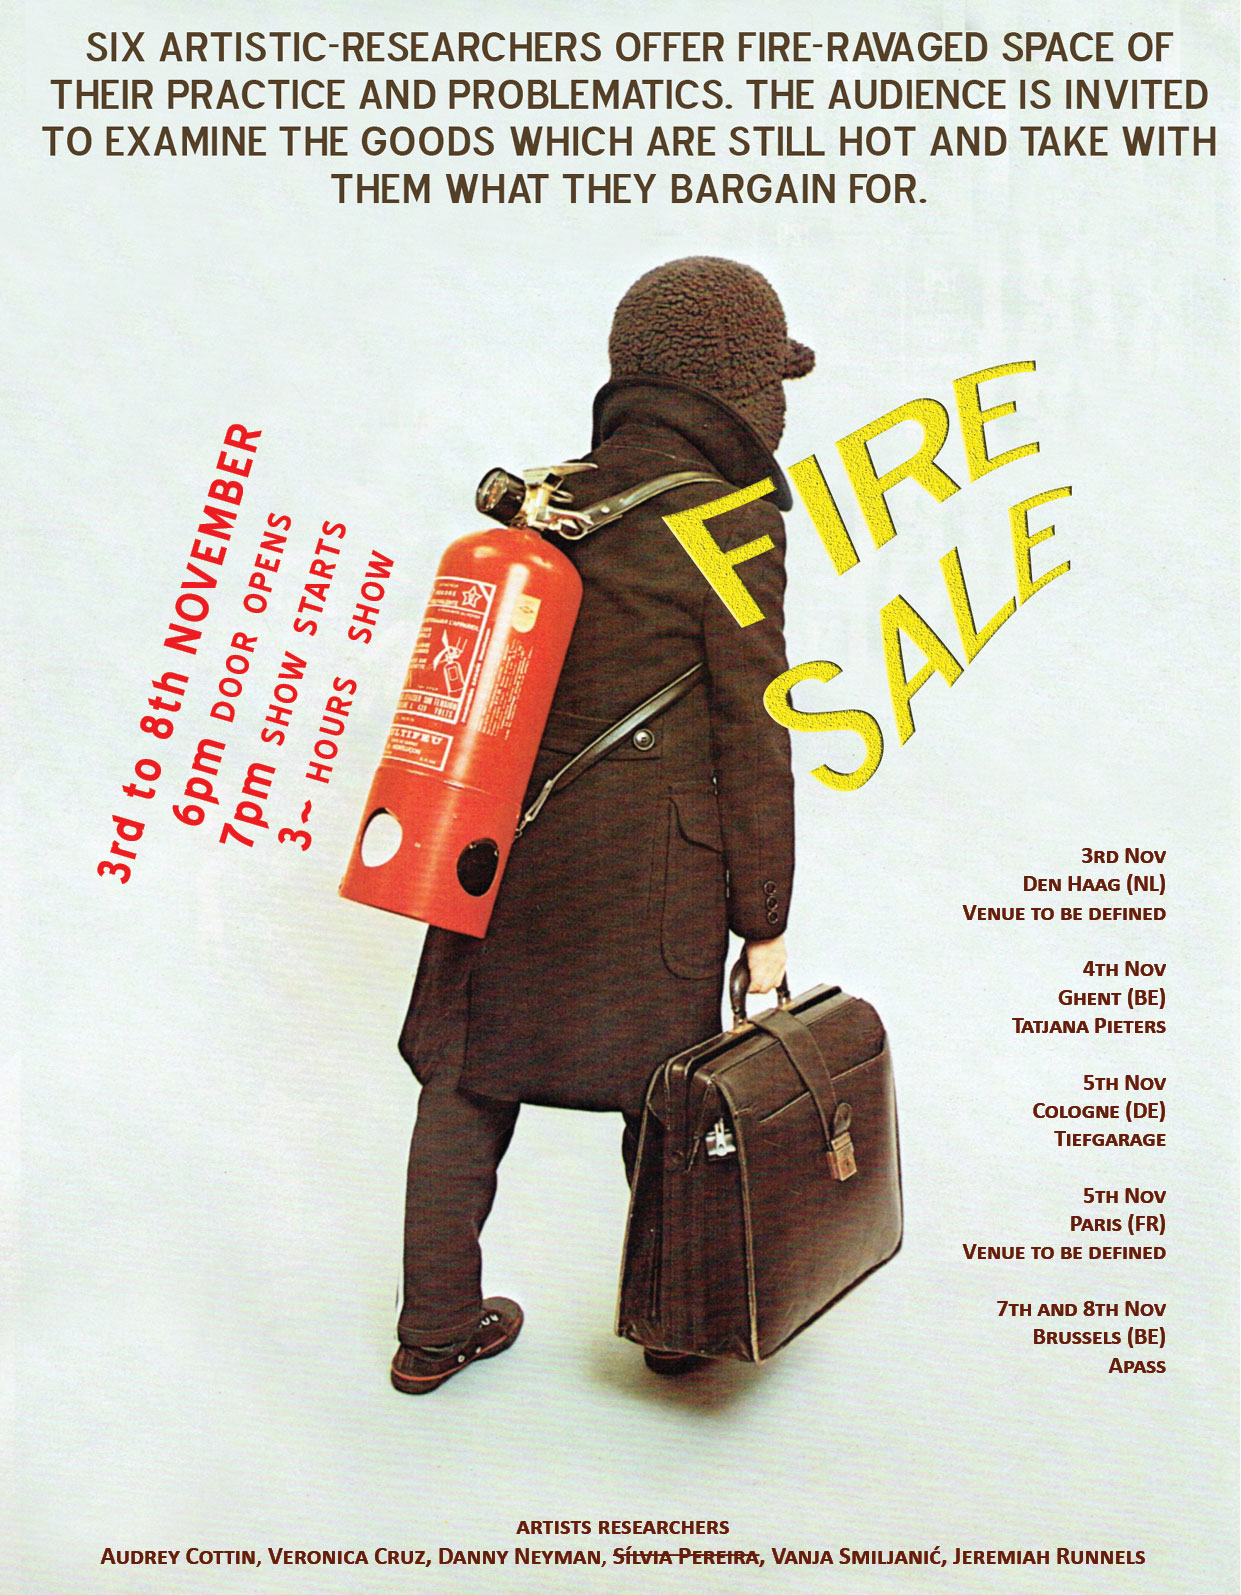 FIRESALE_Researchers_VanjaSmilijanić